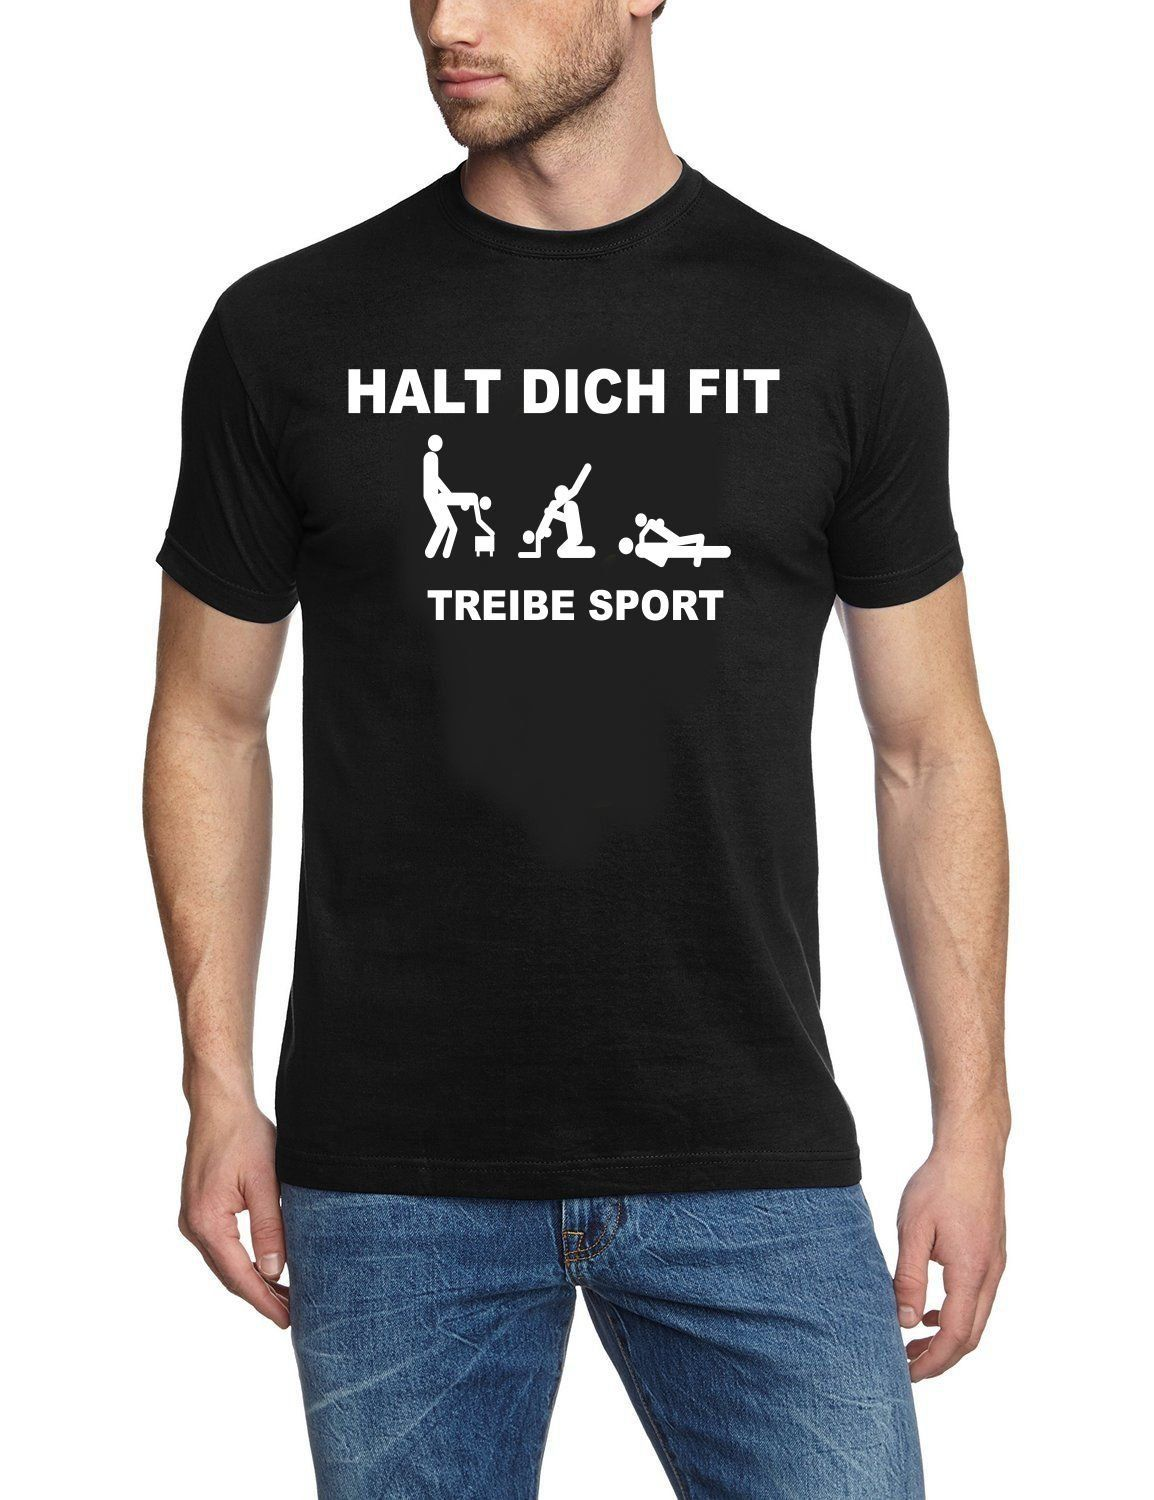 Coole Fun T Shirts Herren T Shirt Halt Dich Fit Treibe Sport